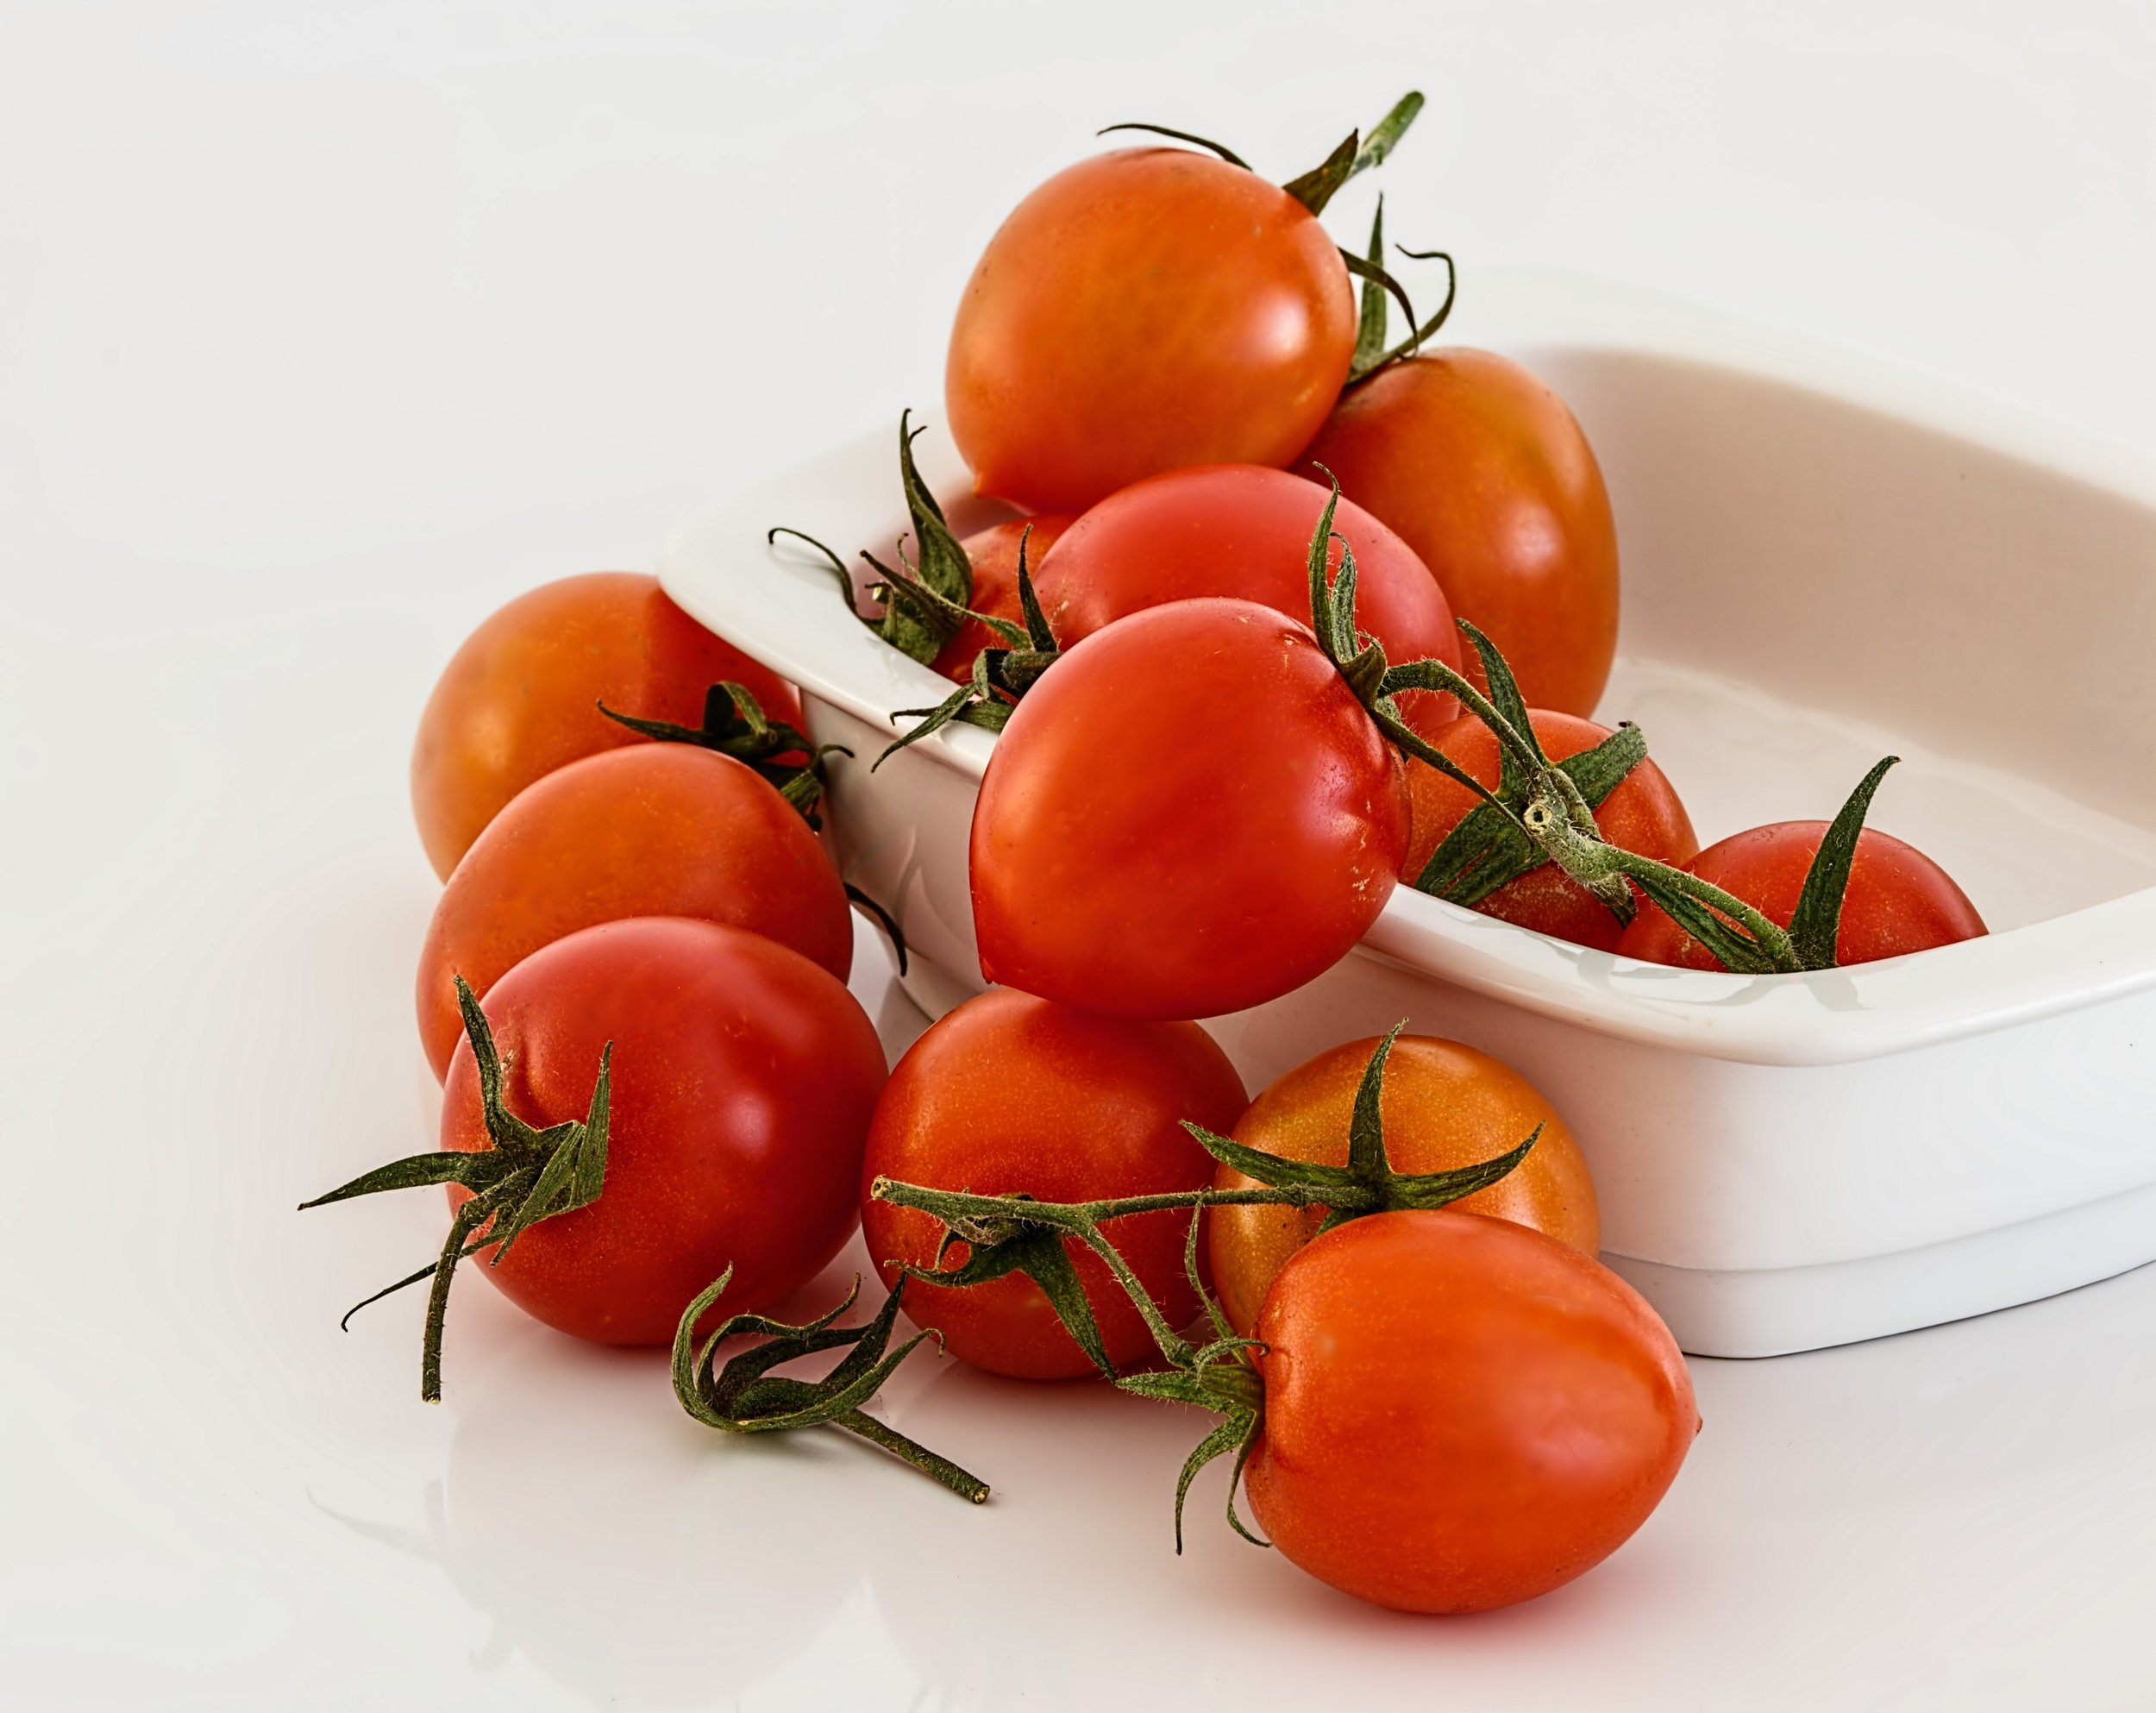 Tomato  Controls blood pressure and scrubs arteries clean. Sauces made with tomatoes (BBQ) and ketchup help keep brittle bones at bay.